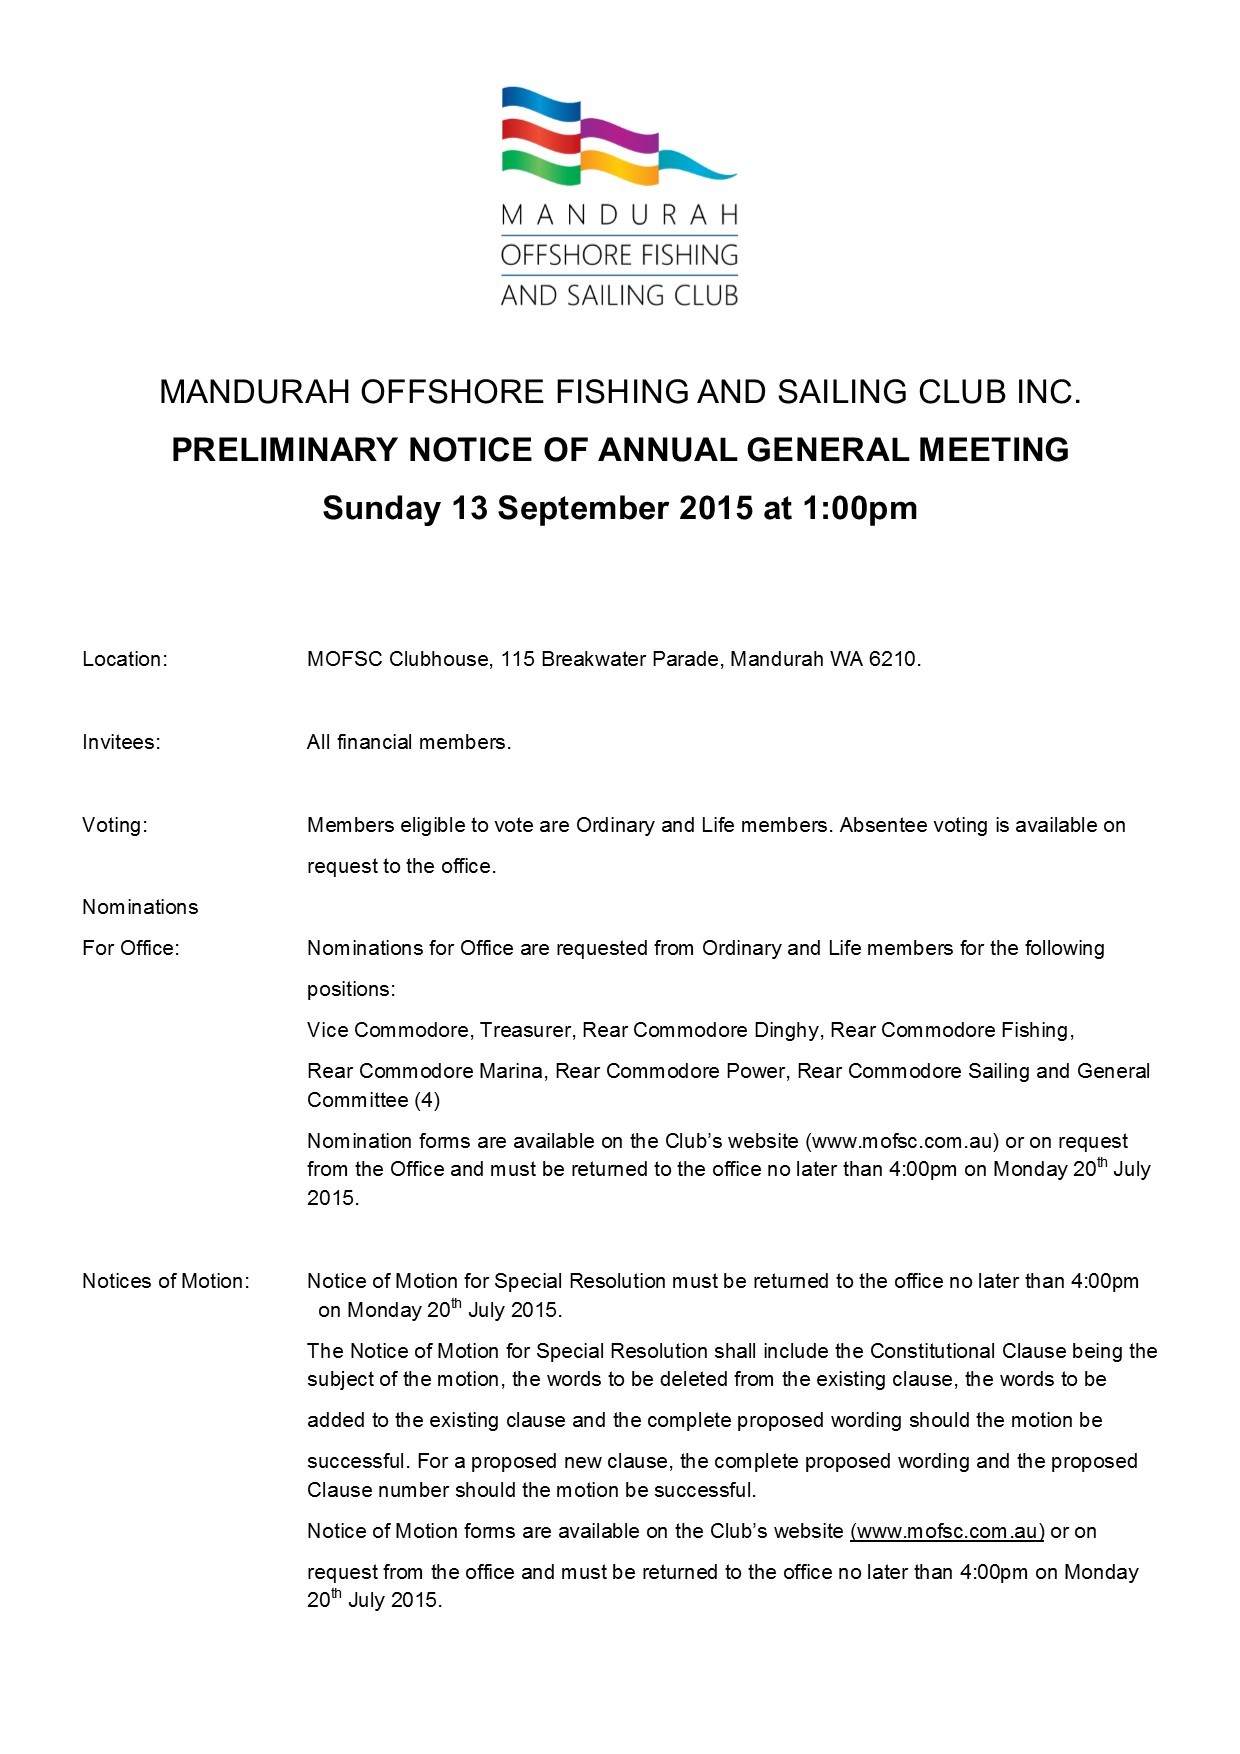 PRELIMINARY NOTICE OF ANNUAL GENERAL MEETING